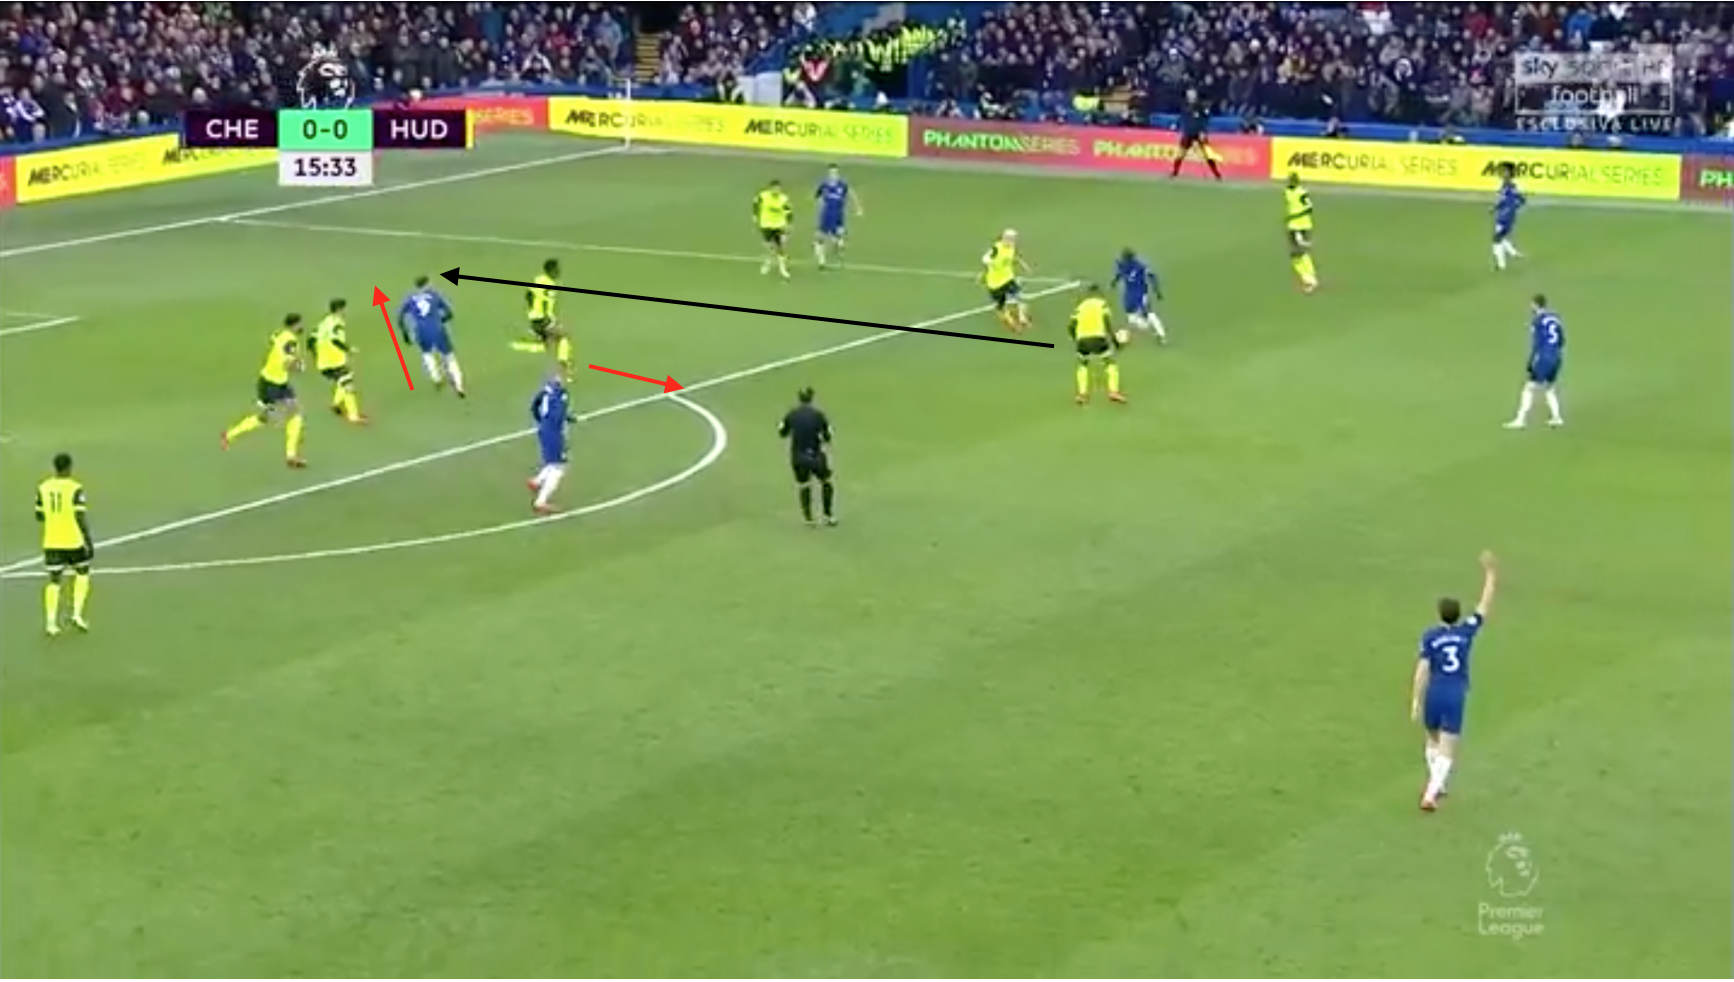 Chelsea vs Huddersfield Premier League Tactical Analysis Statistics